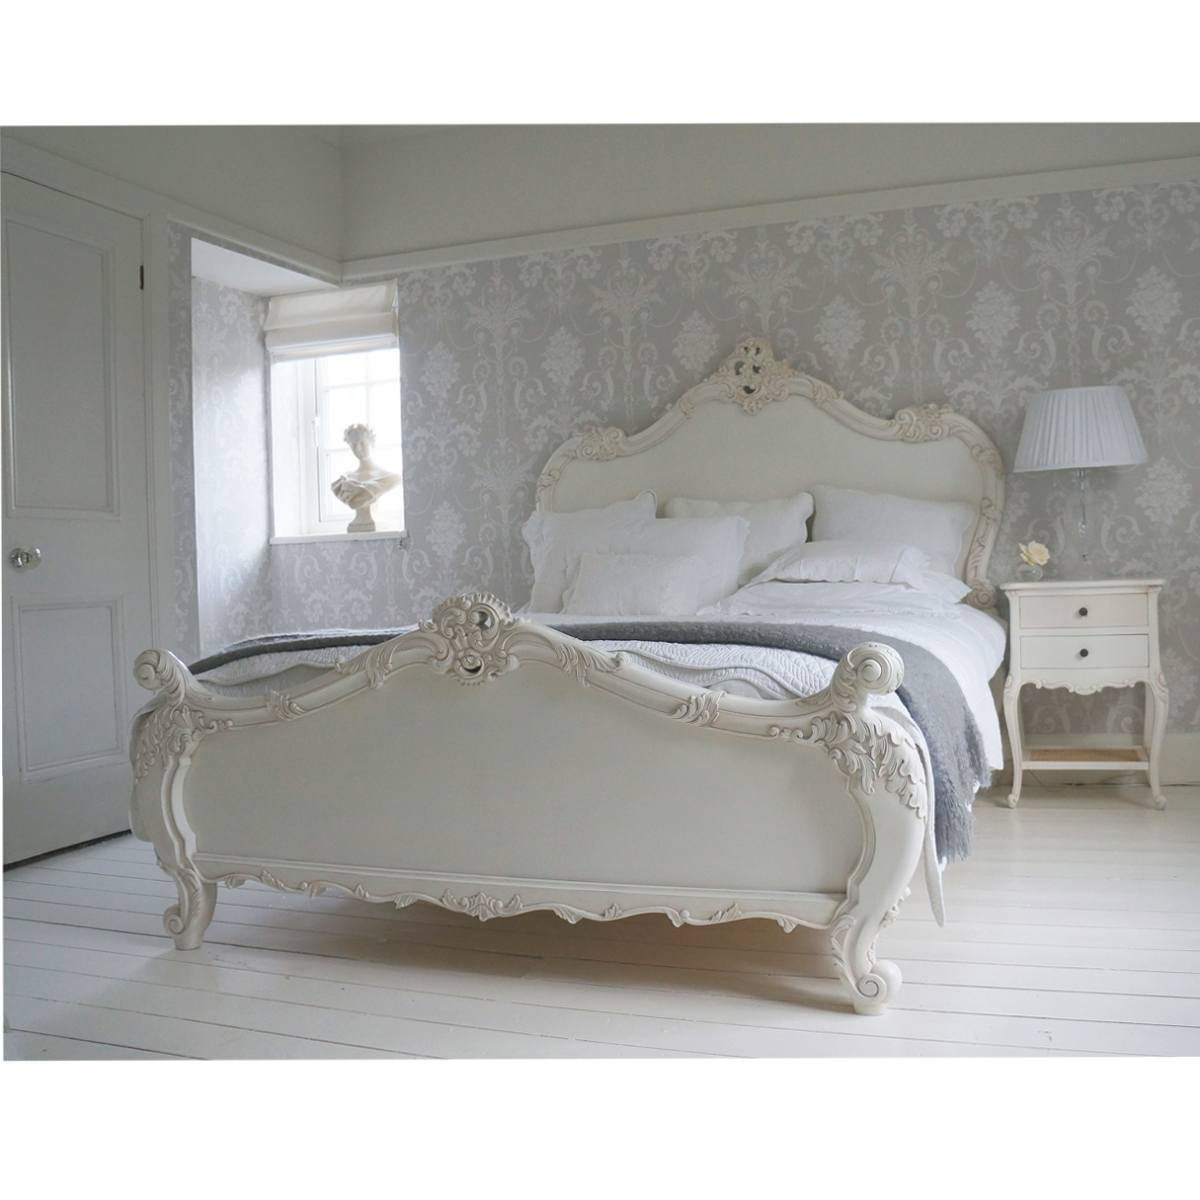 Provencal sassy white french bed french bedroom company for A bedroom in french